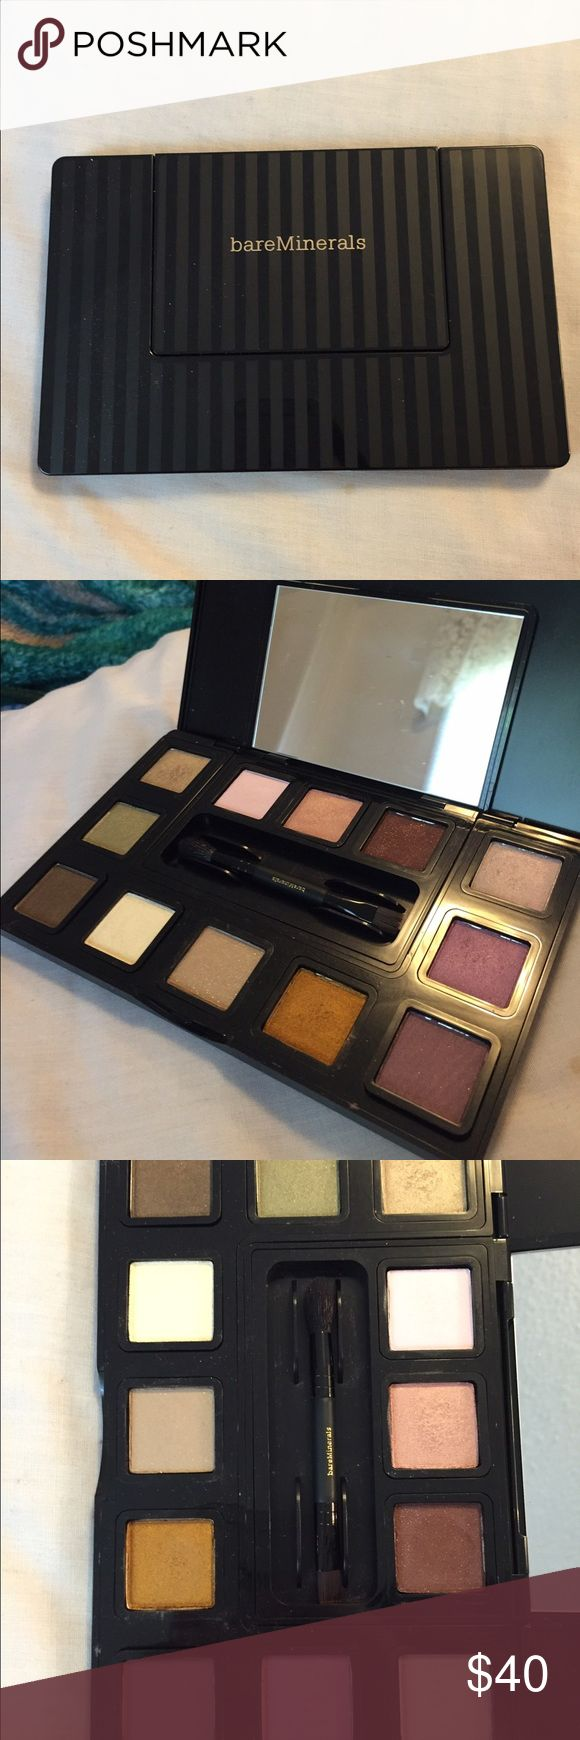 Bare Minerals eyeshadow kit Bare Minerals eyeshadow kit new and unused, brush included! bareMinerals Makeup Eyeliner